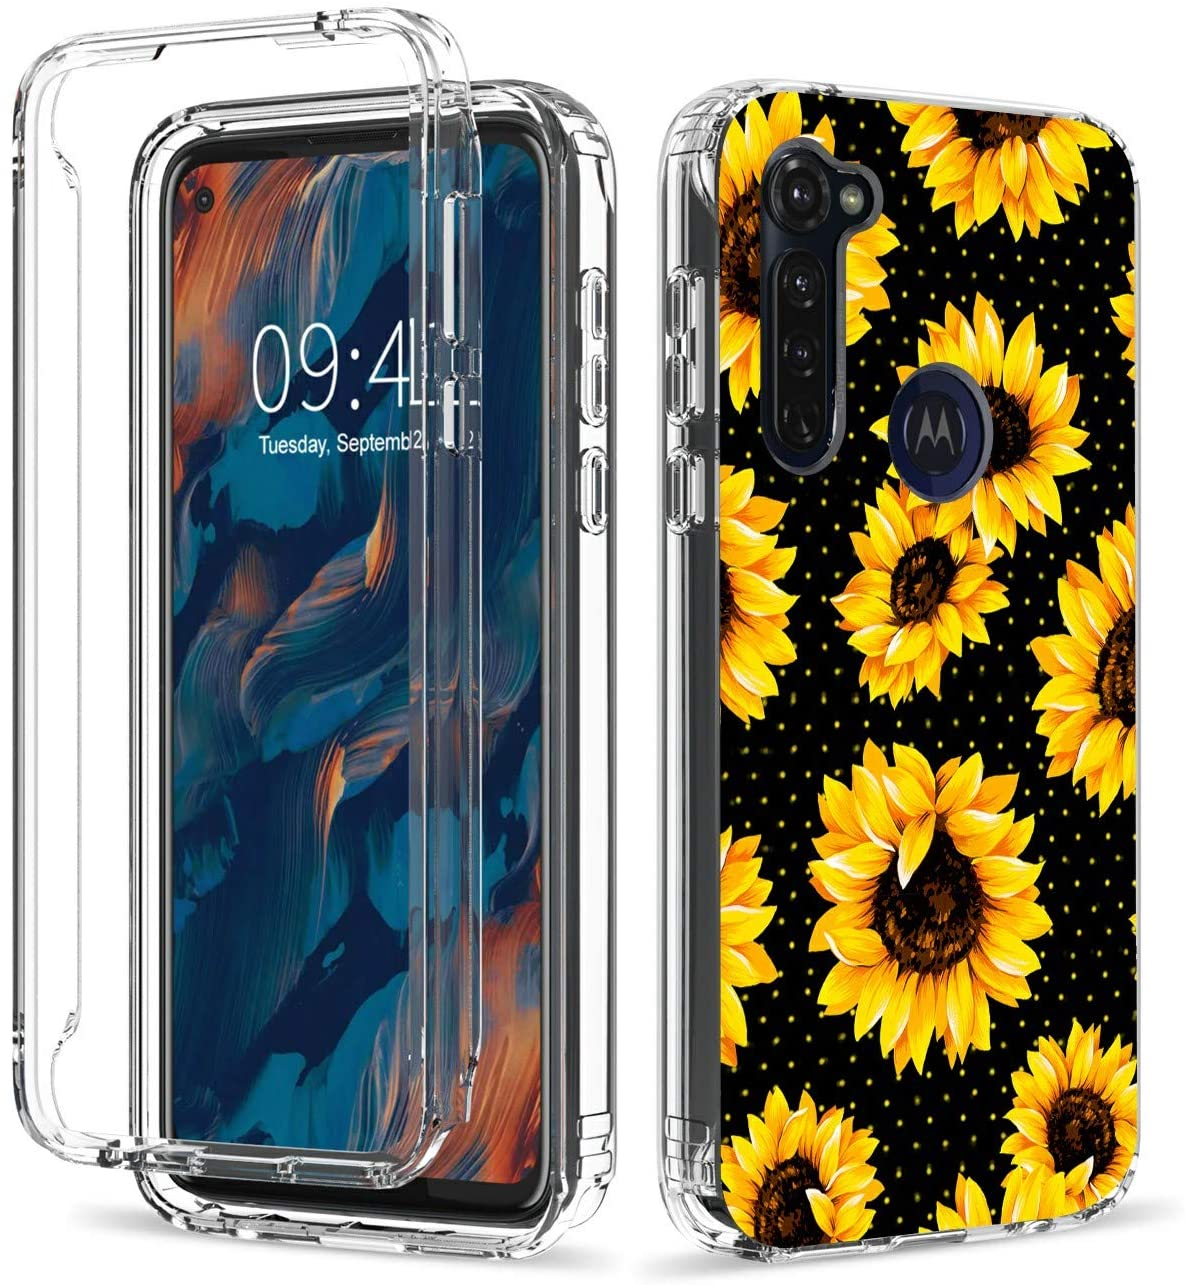 Case for Motorola Moto G Stylus 2020, Rossy Clear with Pattern Design Full Body Shockproof Dual Layer Protective Soft TPU Bumper Phone Case - Vintage Flower Floral Cute Yellow Sunflowers